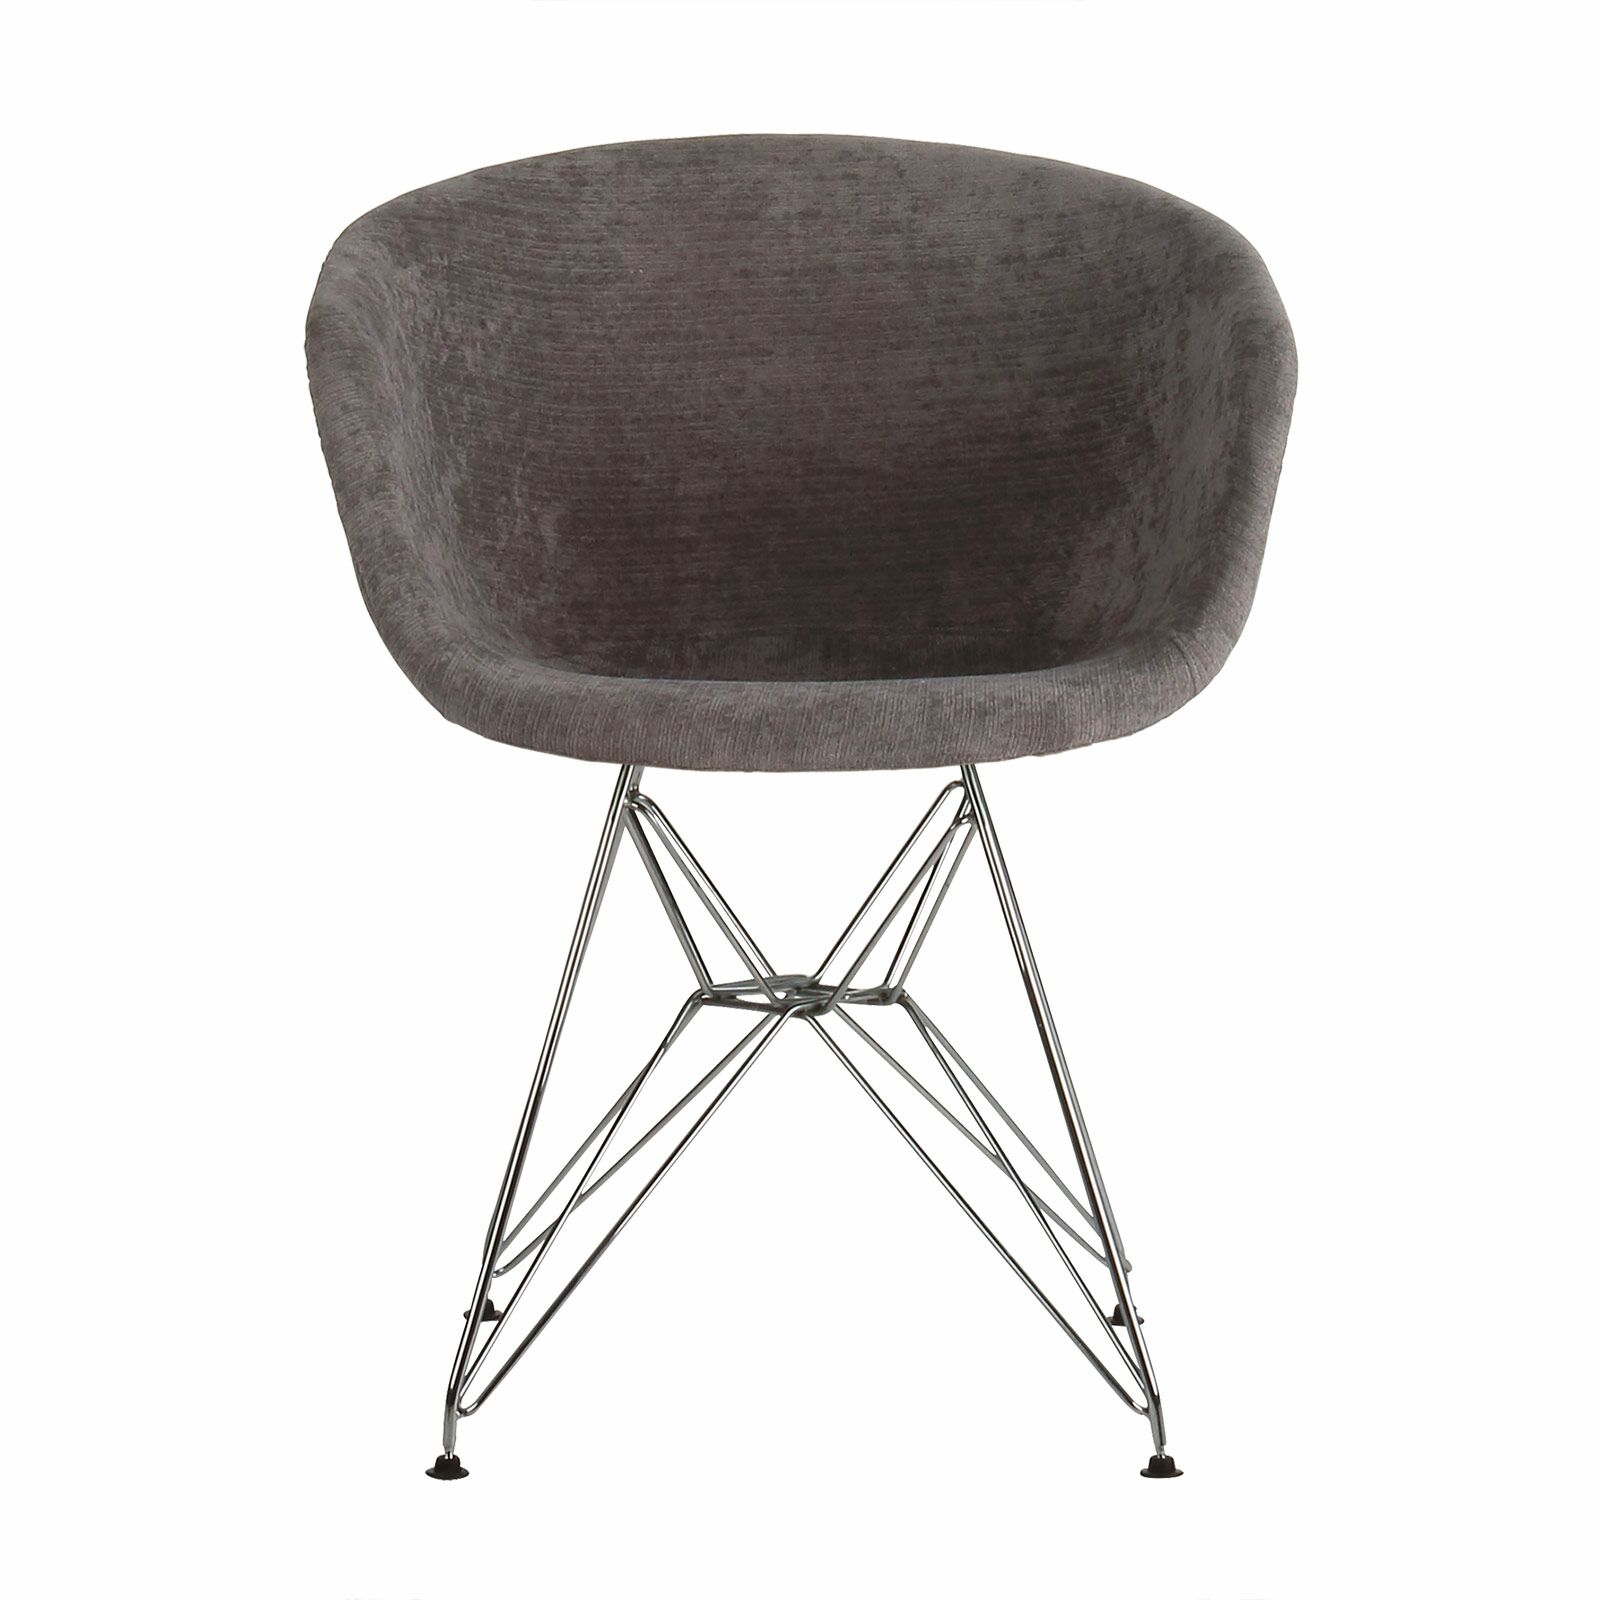 Barrette Upholstered Dining Chair Upholstery Color: Dark Gray